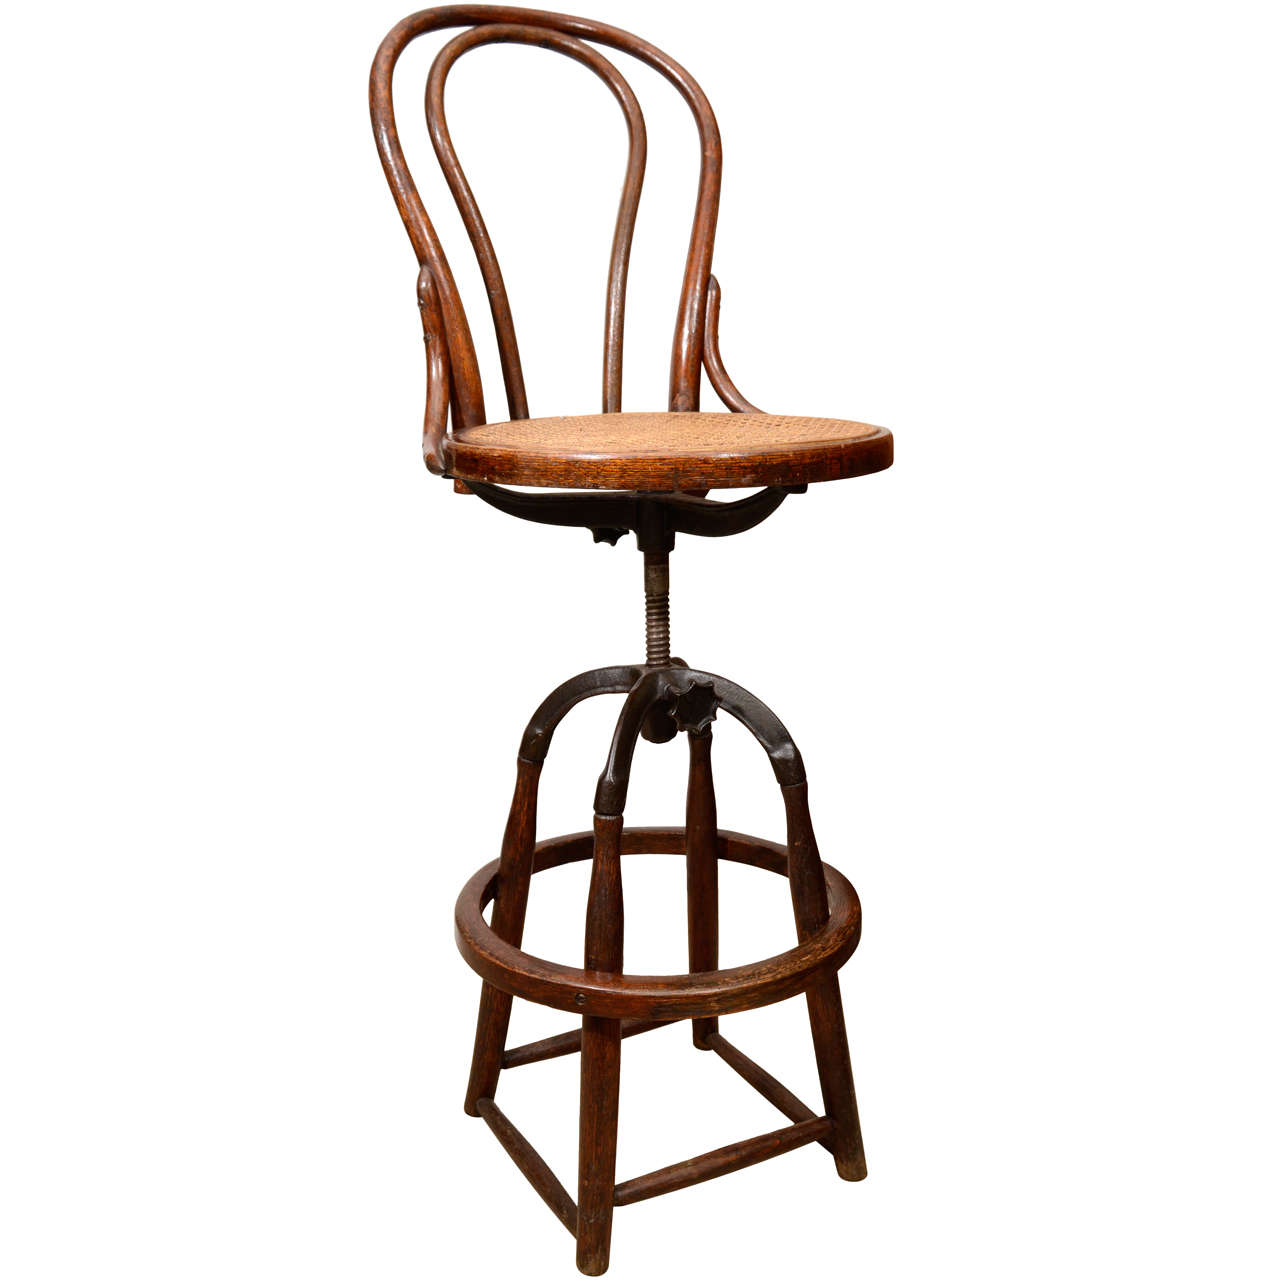 Vintage Industrial Adjustable Wood And Cane Seat Stool At